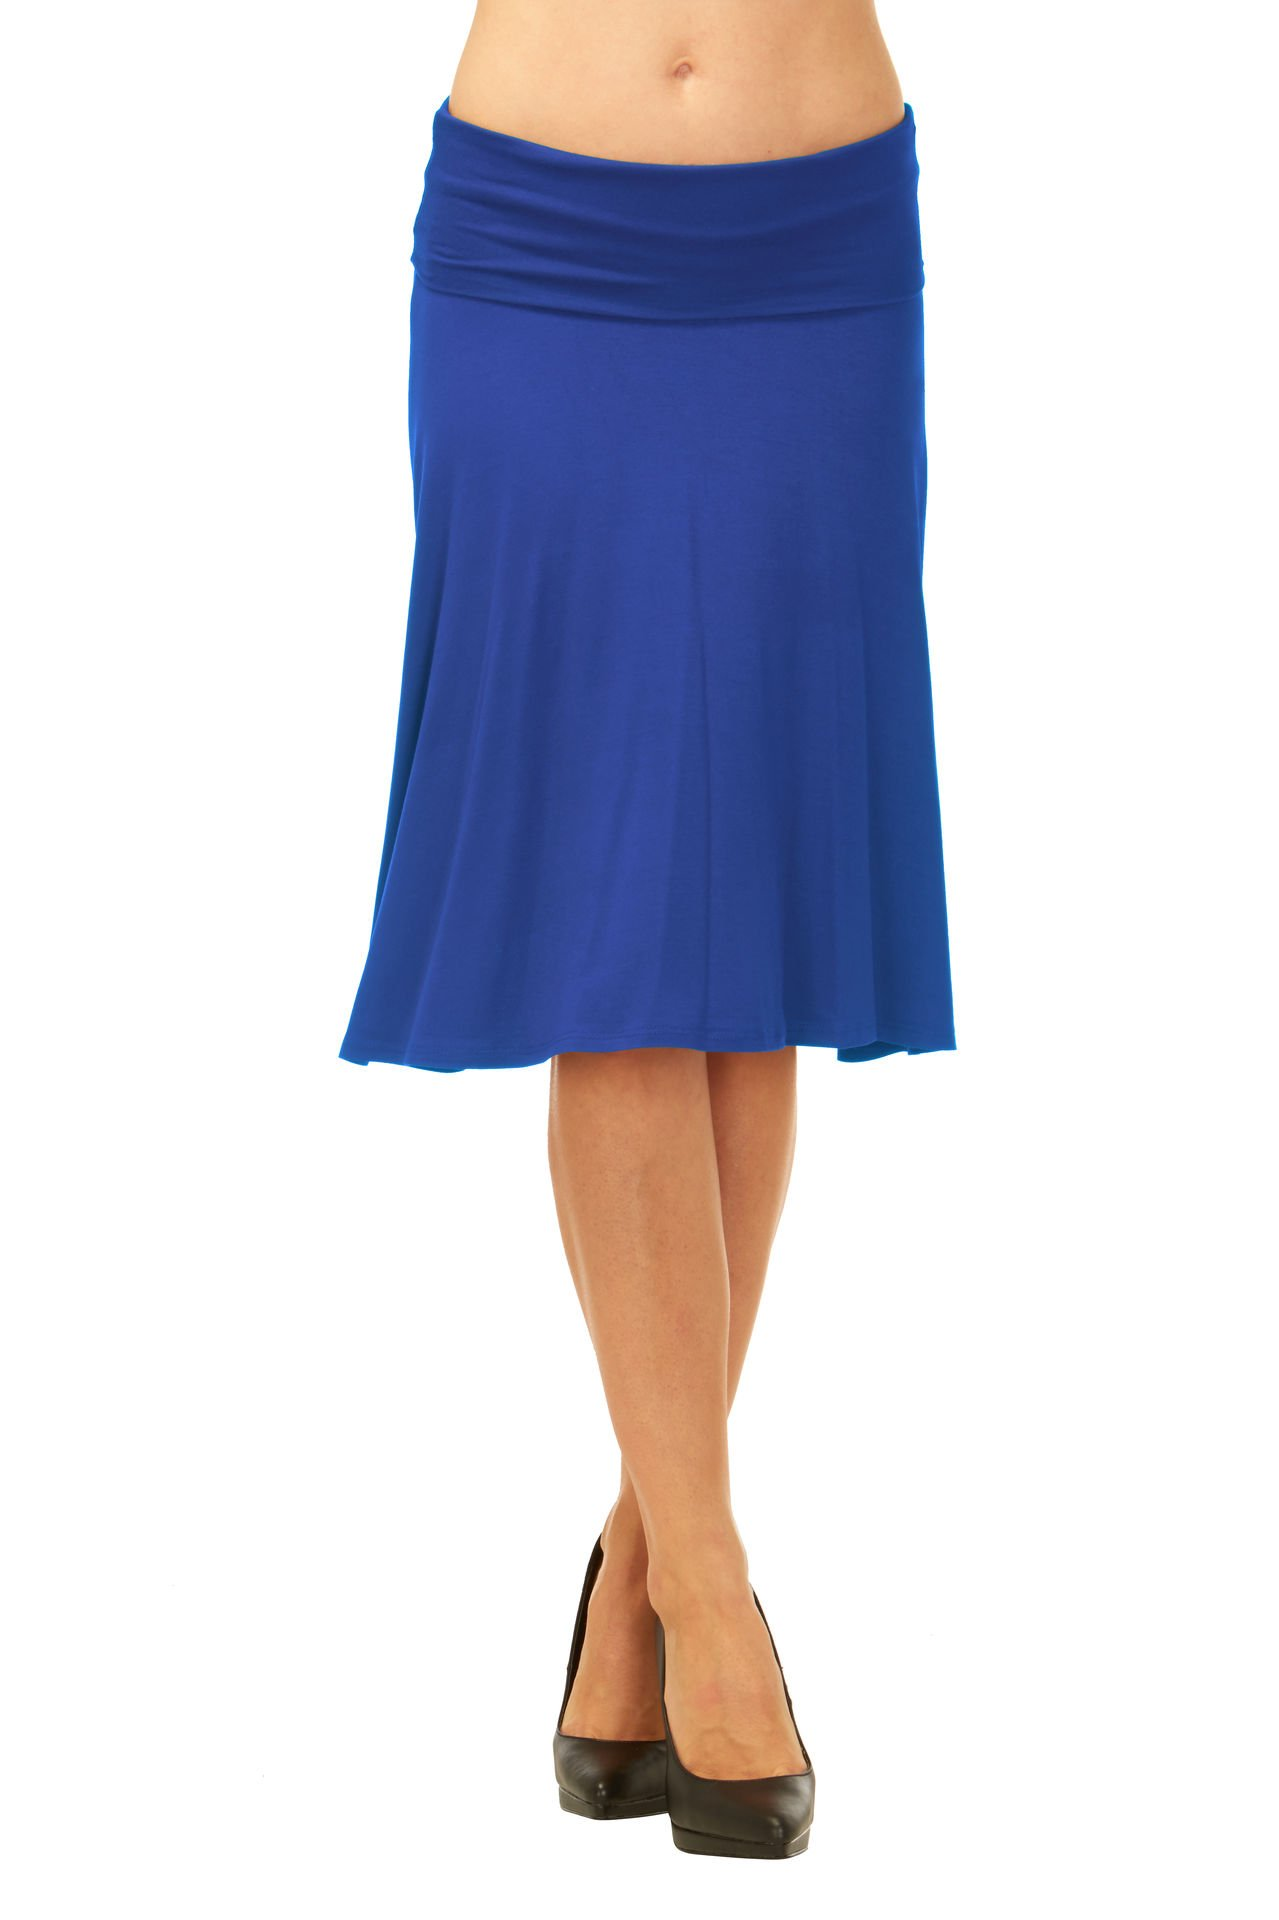 Red Hanger Womens Basic Solid Stretch Fold-Over Flare Midi Skirt (Royal Blue-XL)